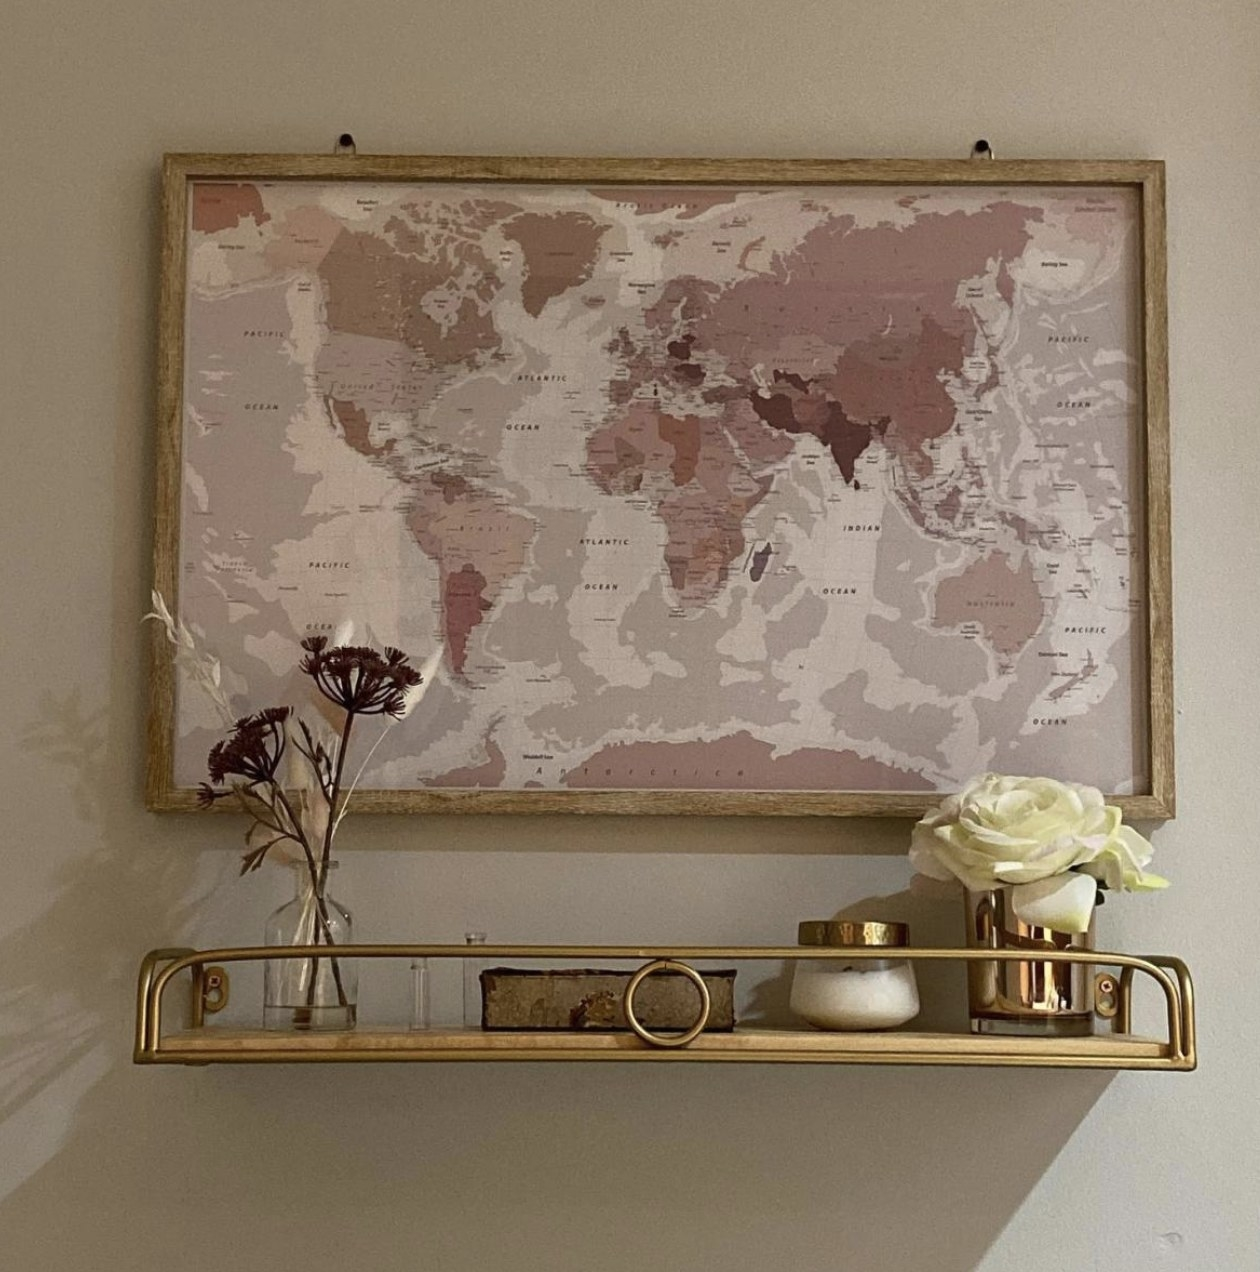 Floating shelf on wall with décor on it